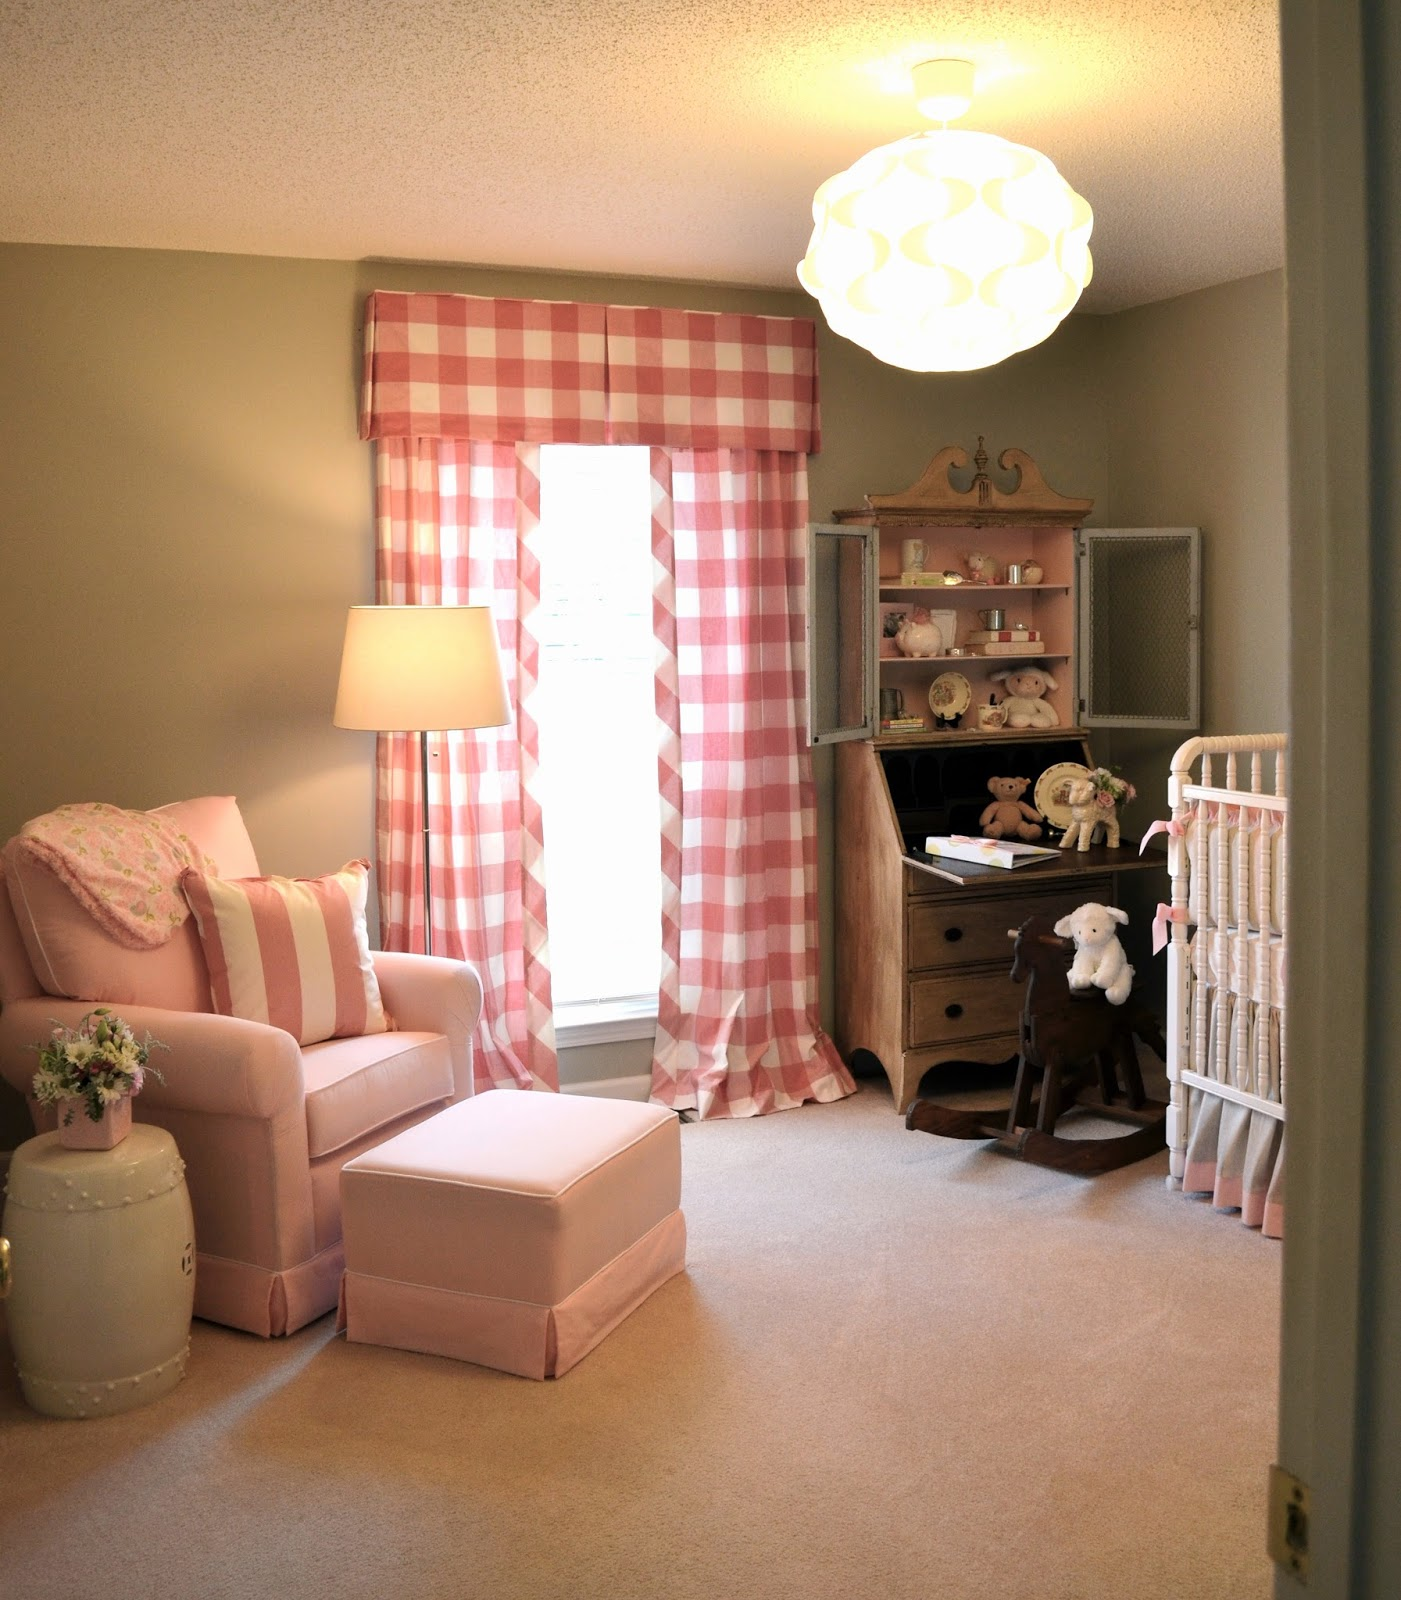 07 Mar Pink Gray And Cream Nursery